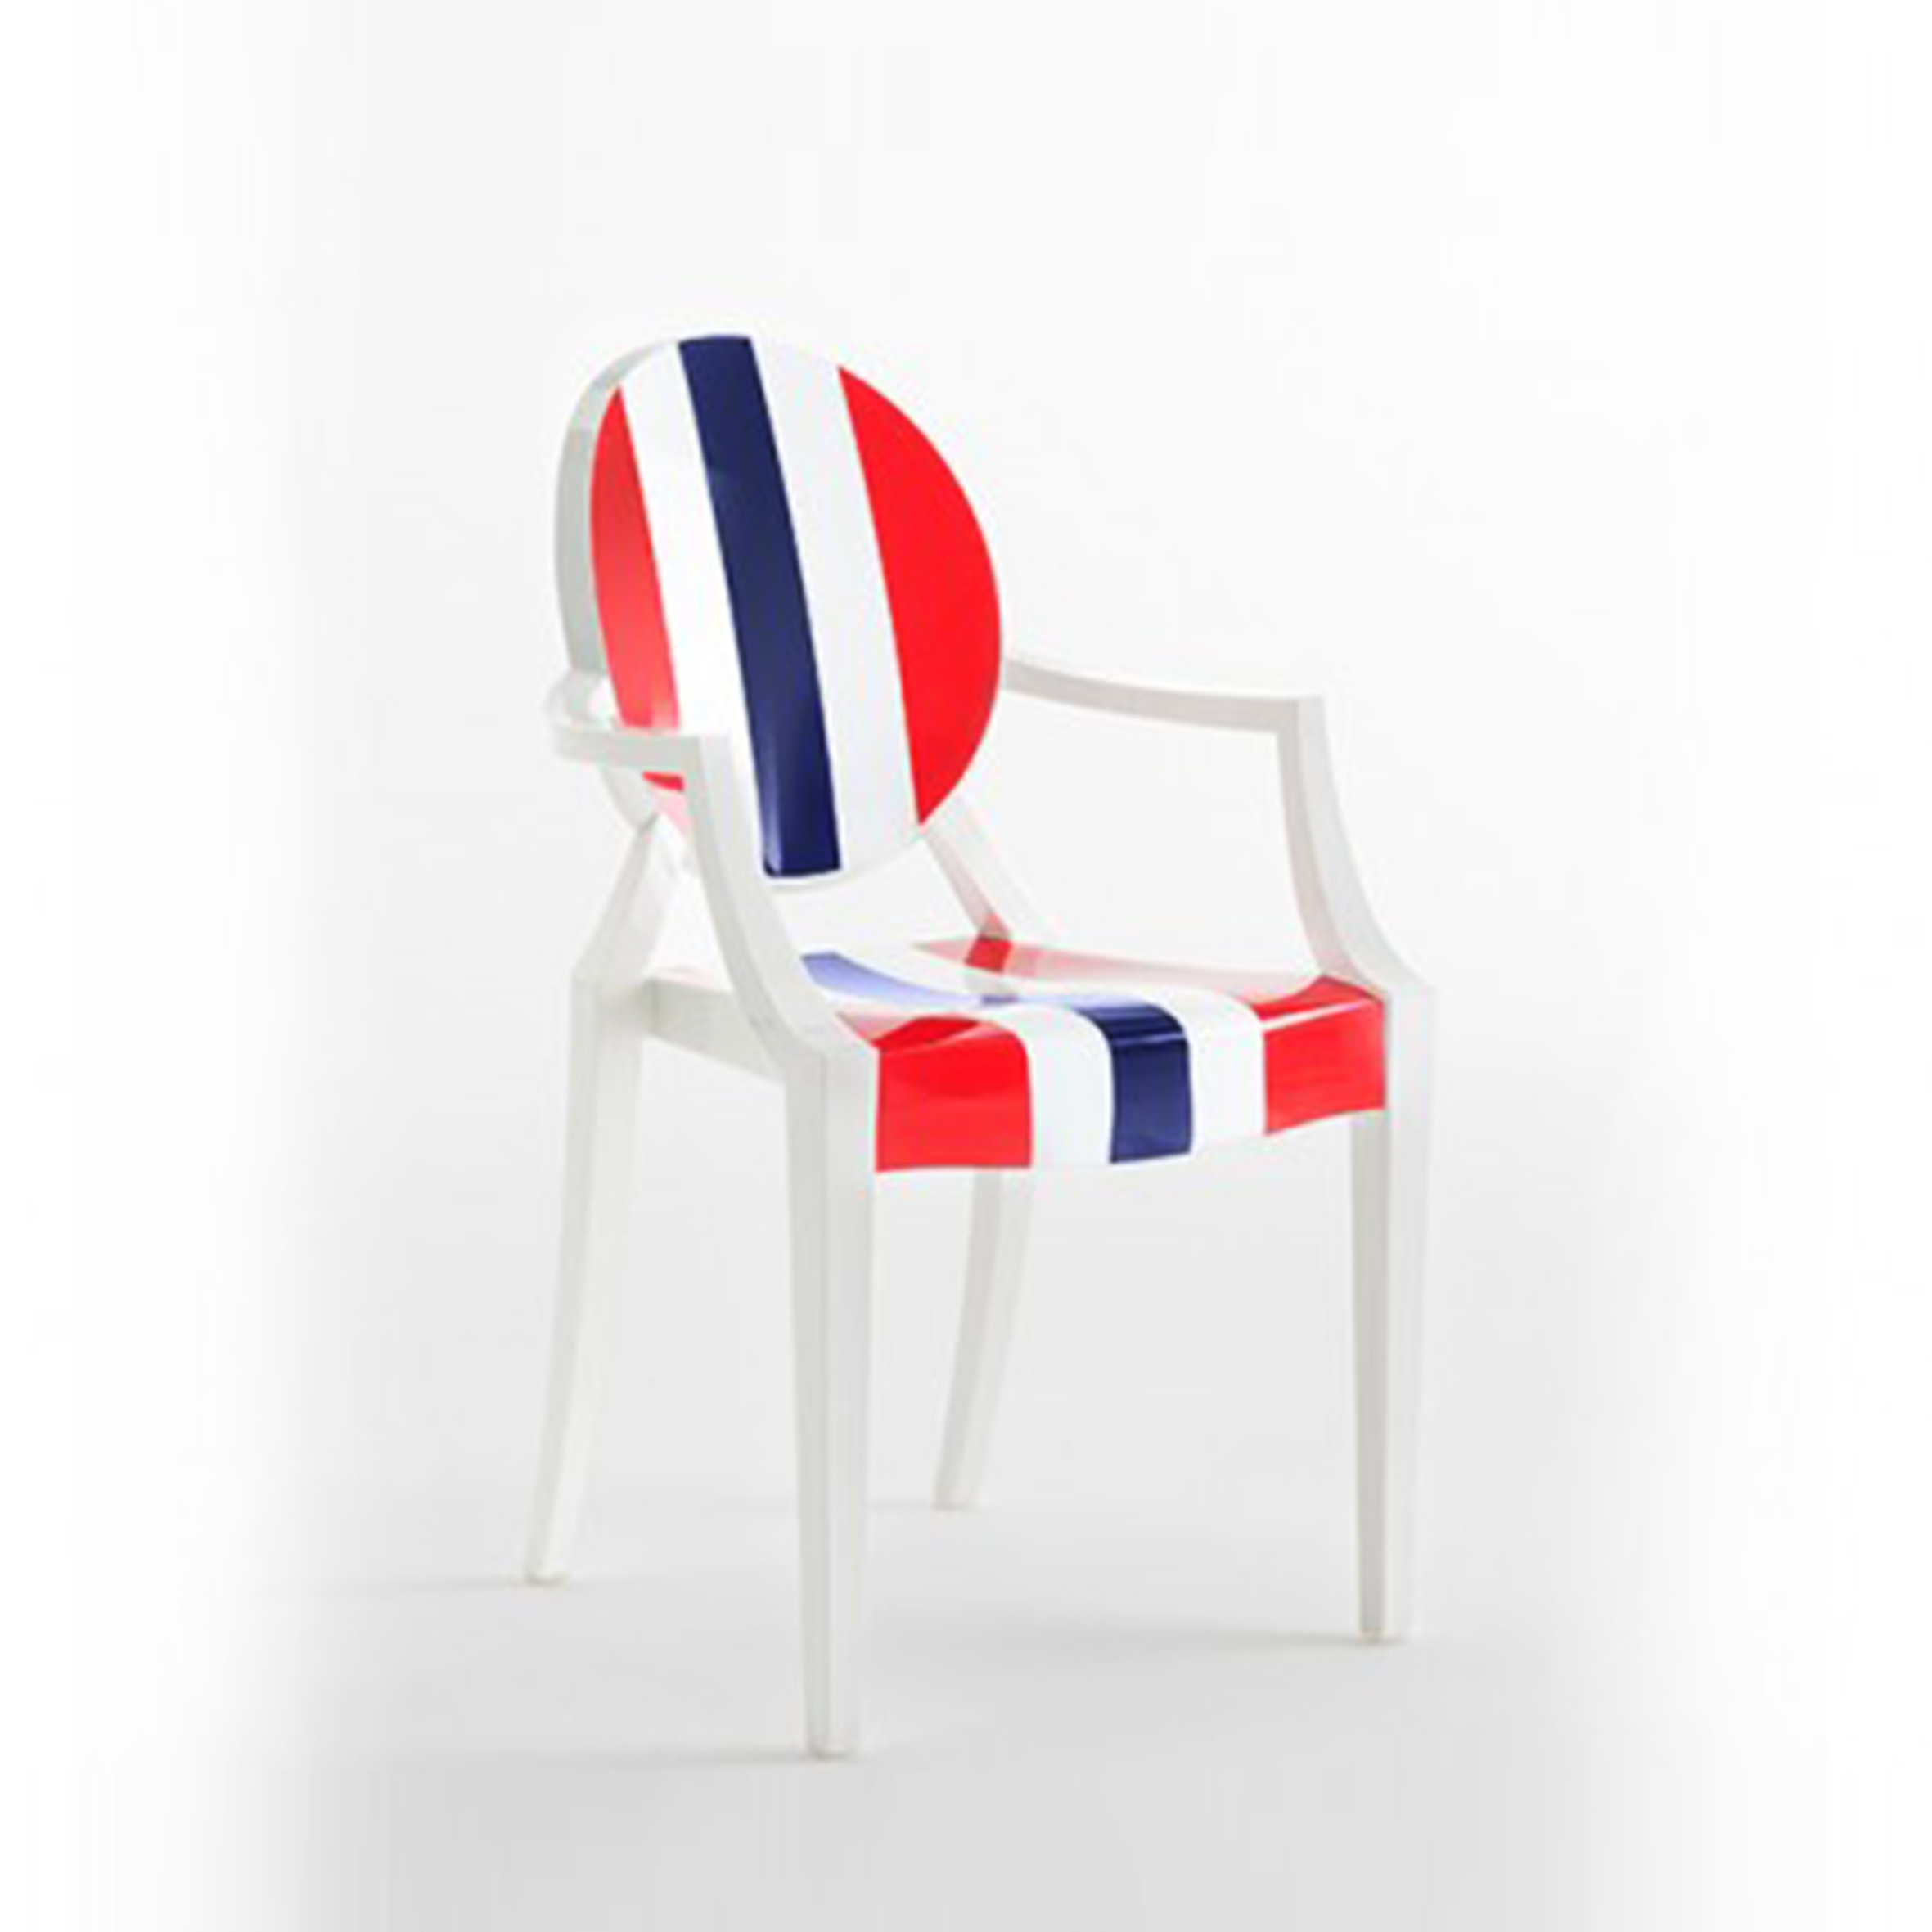 Kartell+Lapo. It's a Wrap! Lapo Elkann and Garage Italia Customs for Kartell